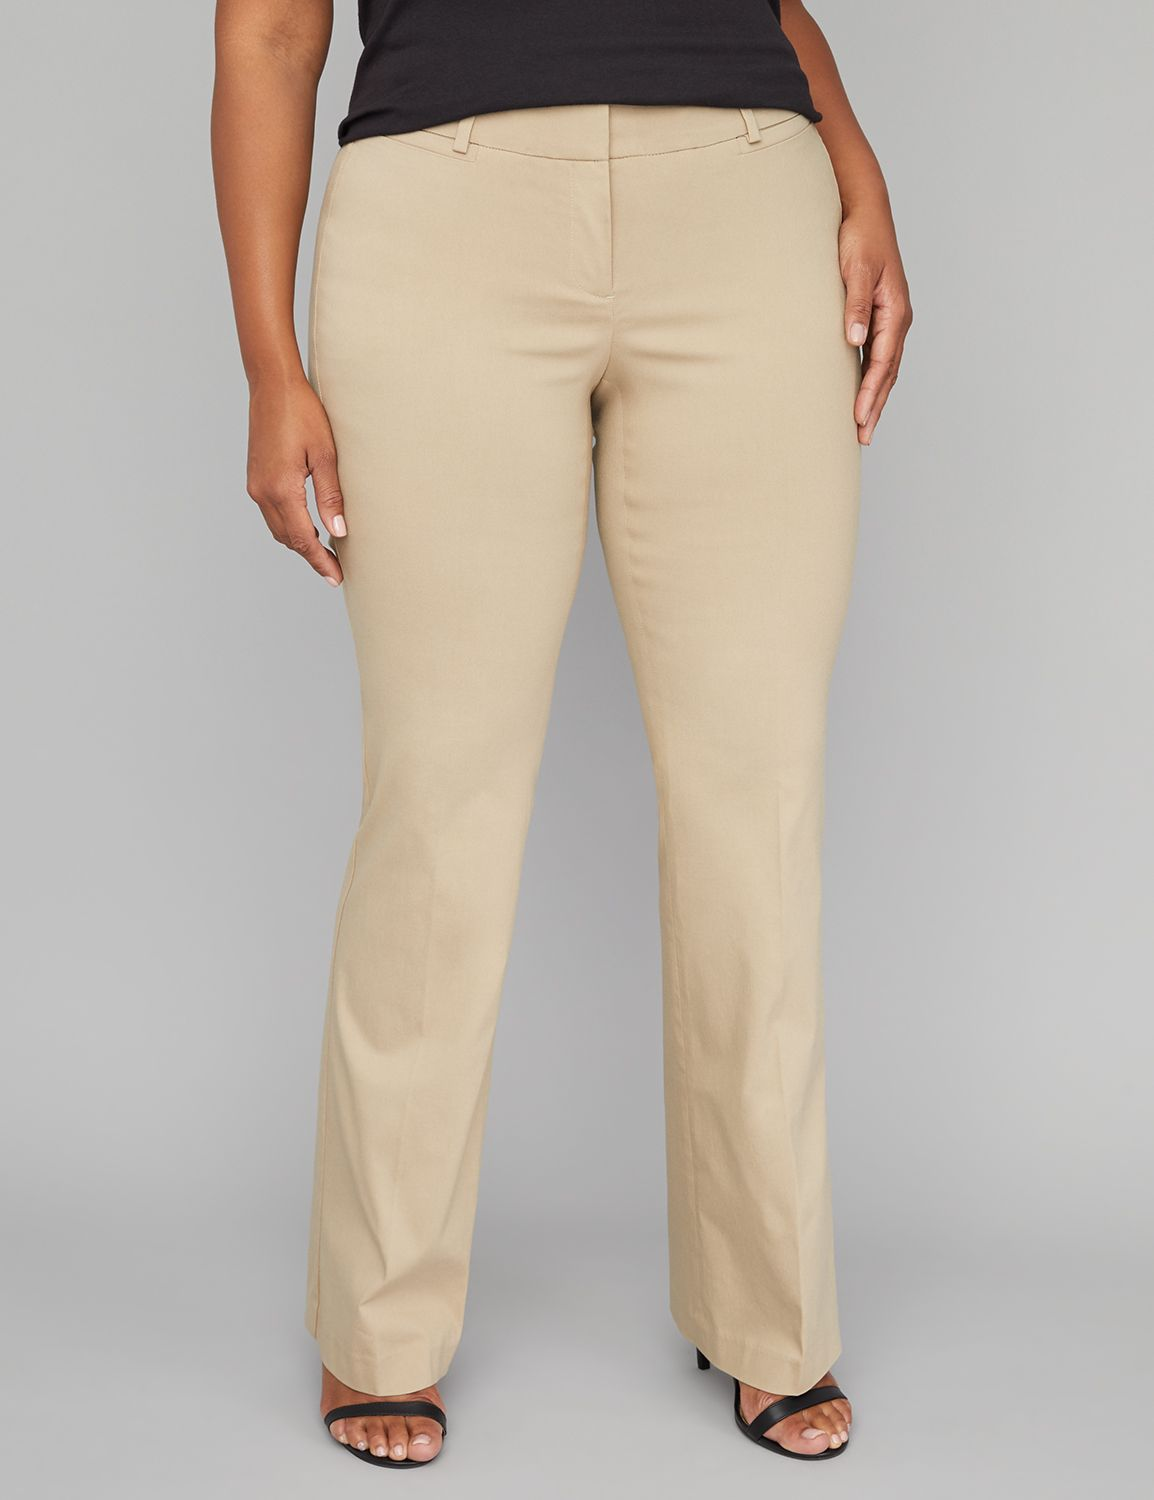 Pantaloni de damă LANE BRYANT Allie, Plus size